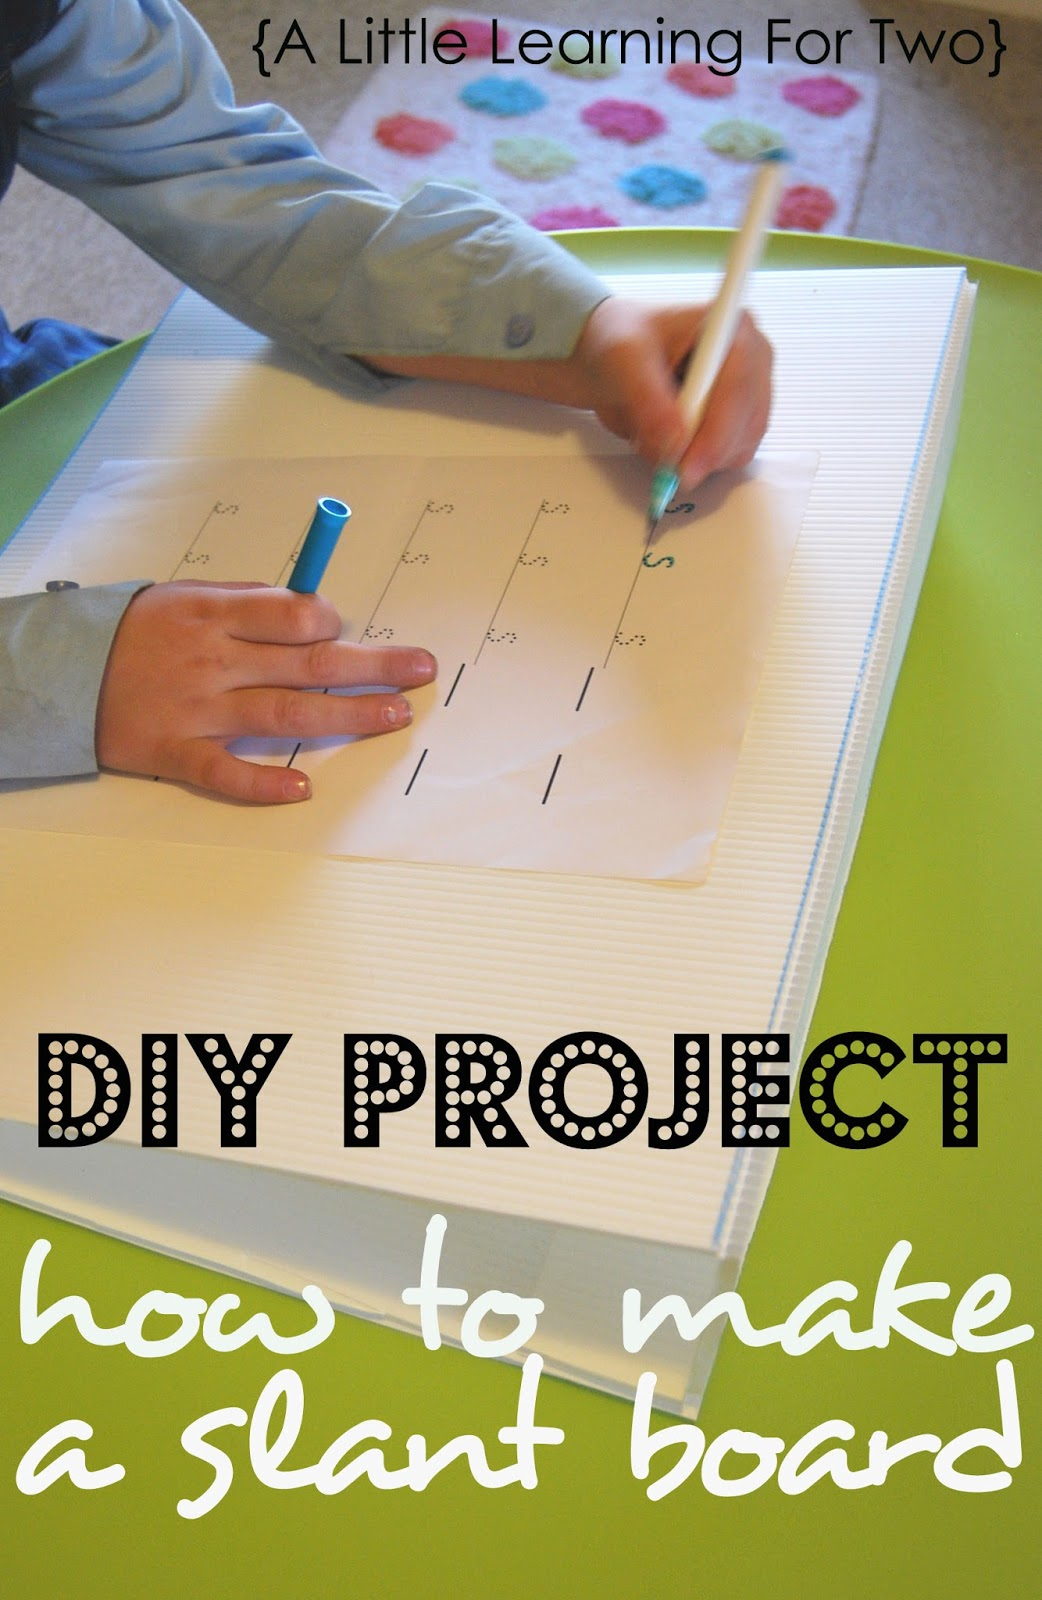 A Little Learning For Two Diy How To Make A Slant Board